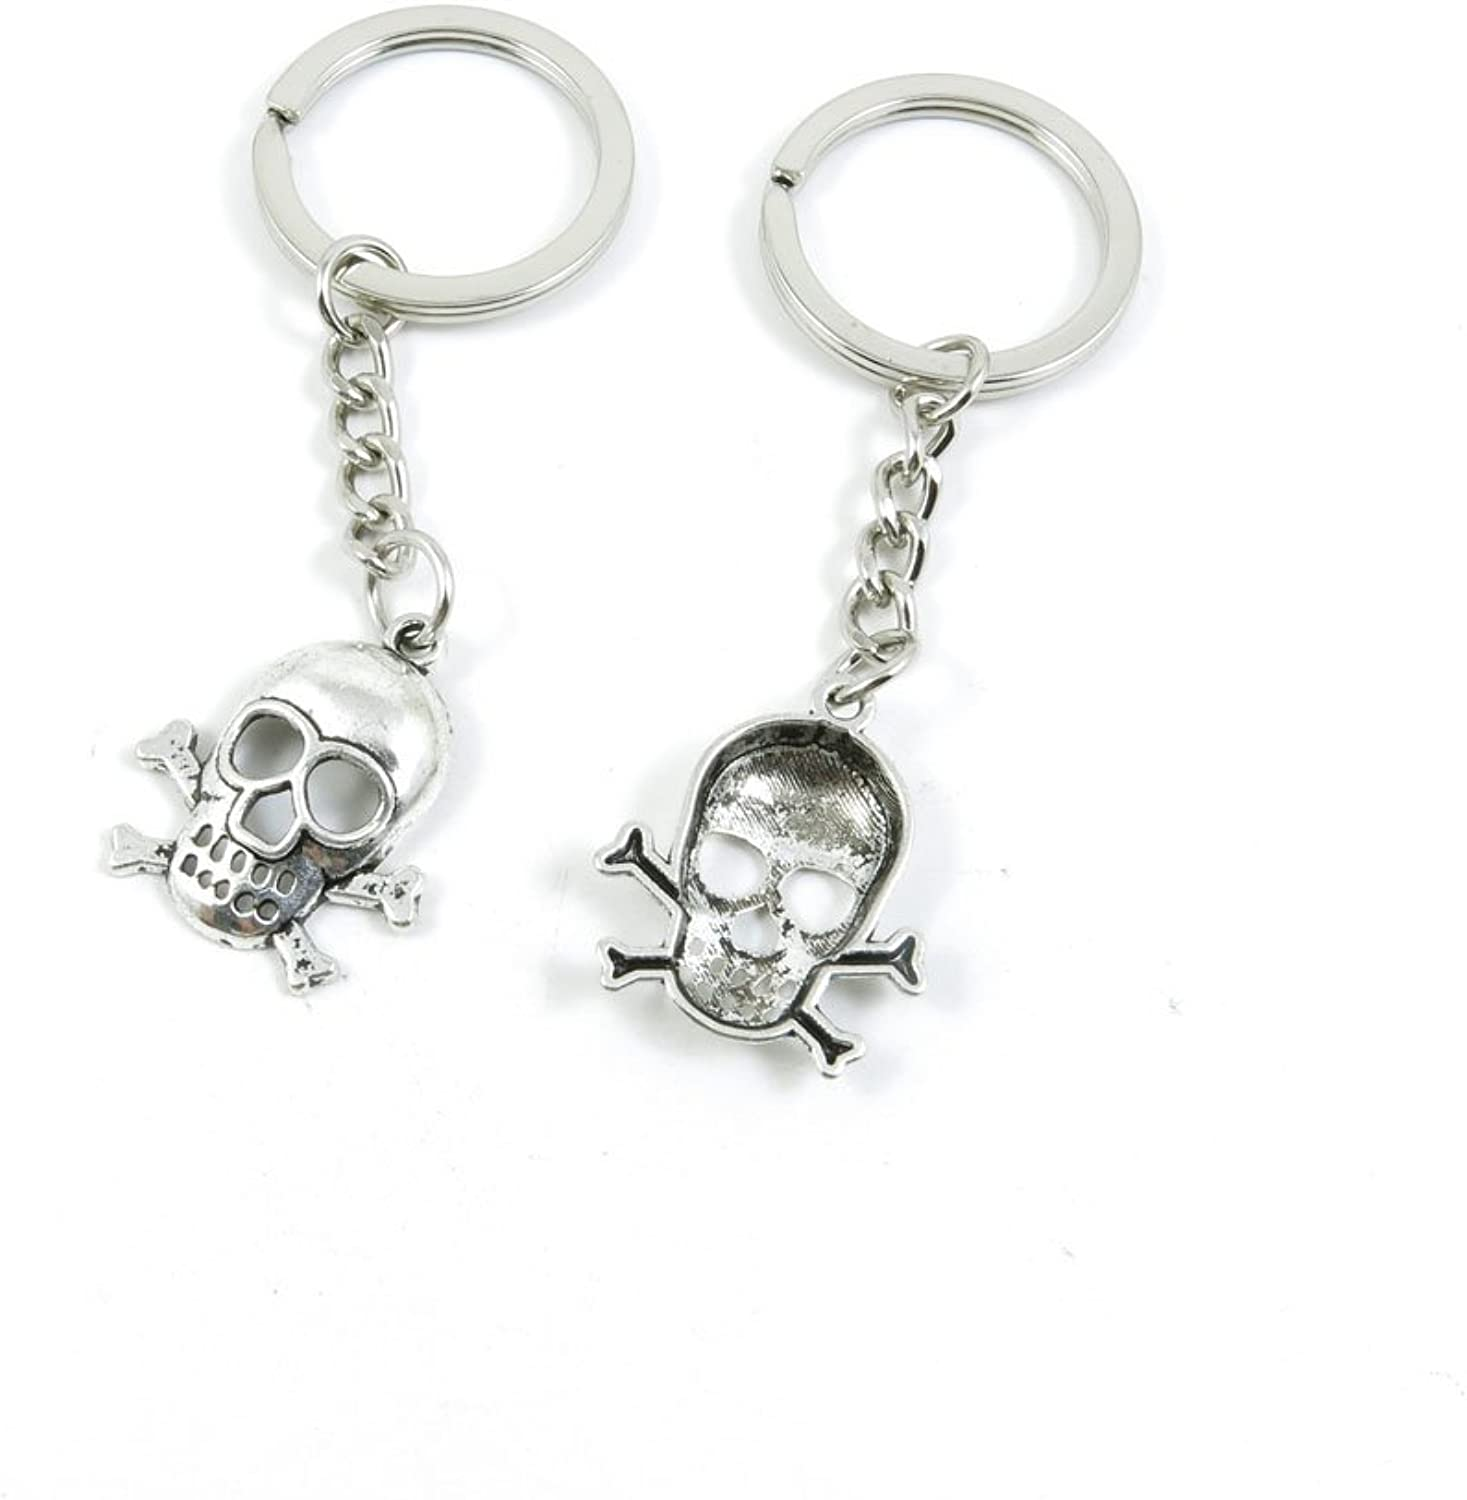 210 Pieces Fashion Jewelry Keyring Keychain Door Car Key Tag Ring Chain Supplier Supply Wholesale Bulk Lots I3KU4 Skull Head